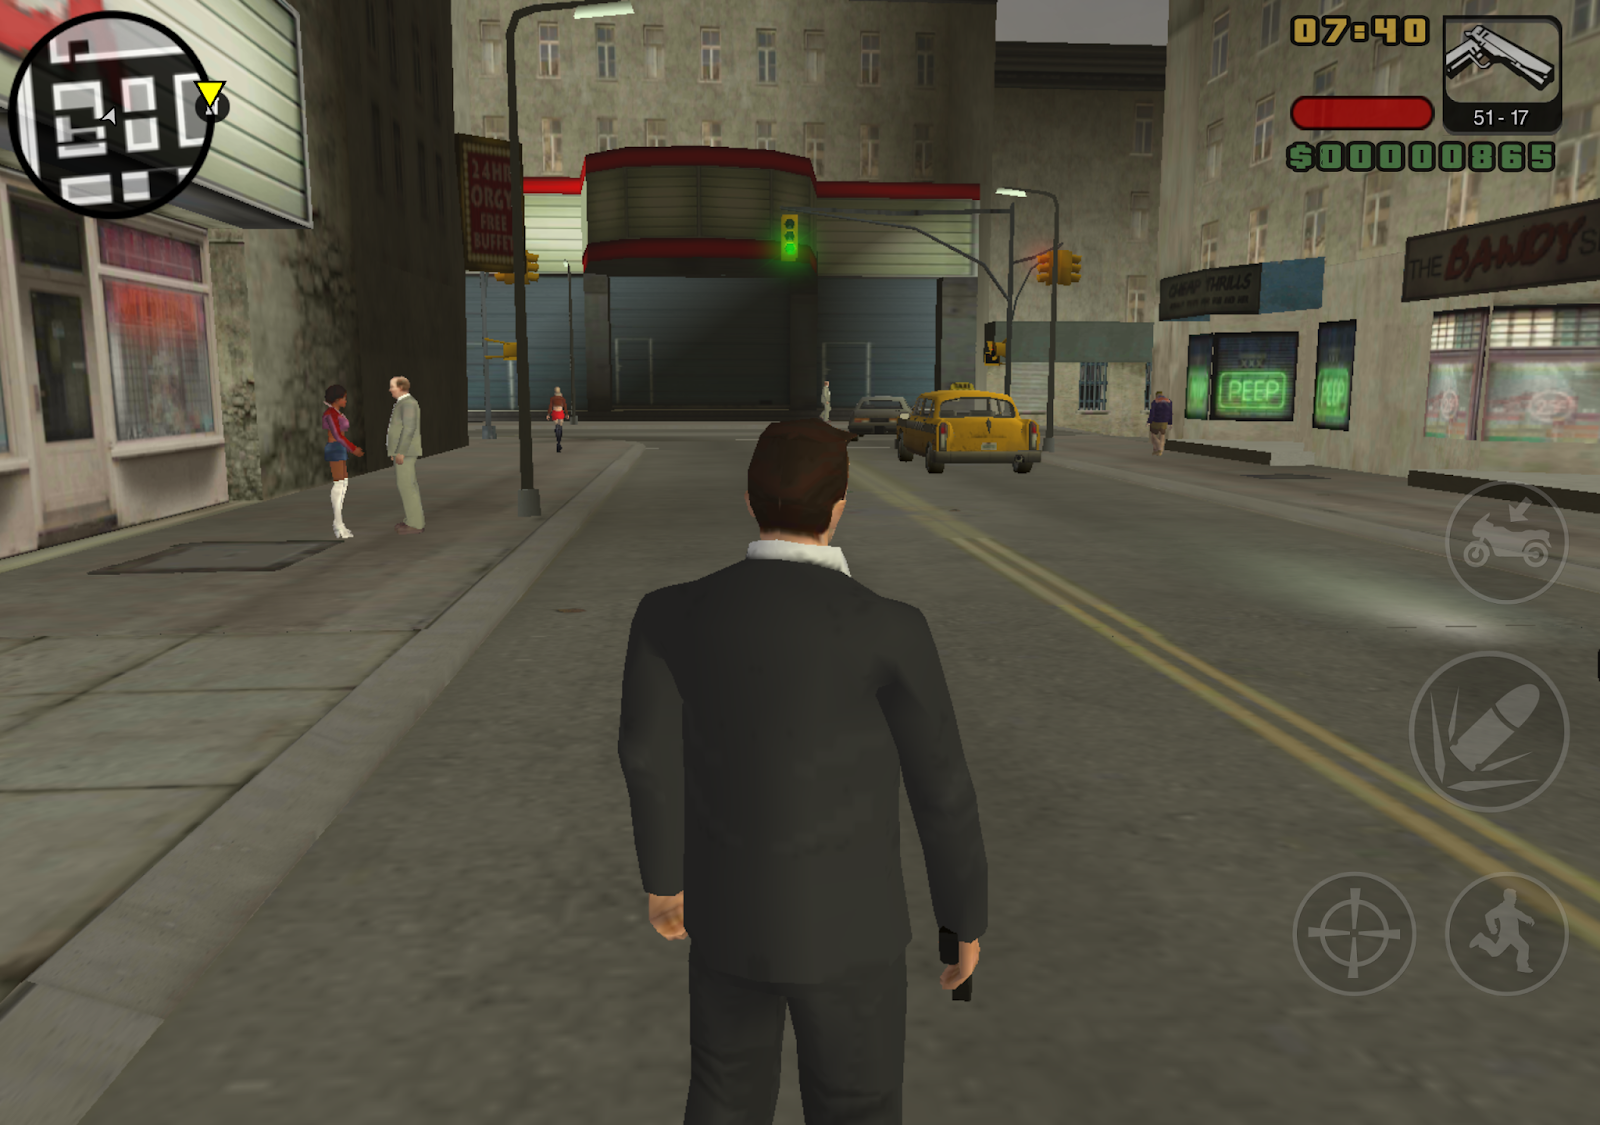 gta liberty city stories android free download